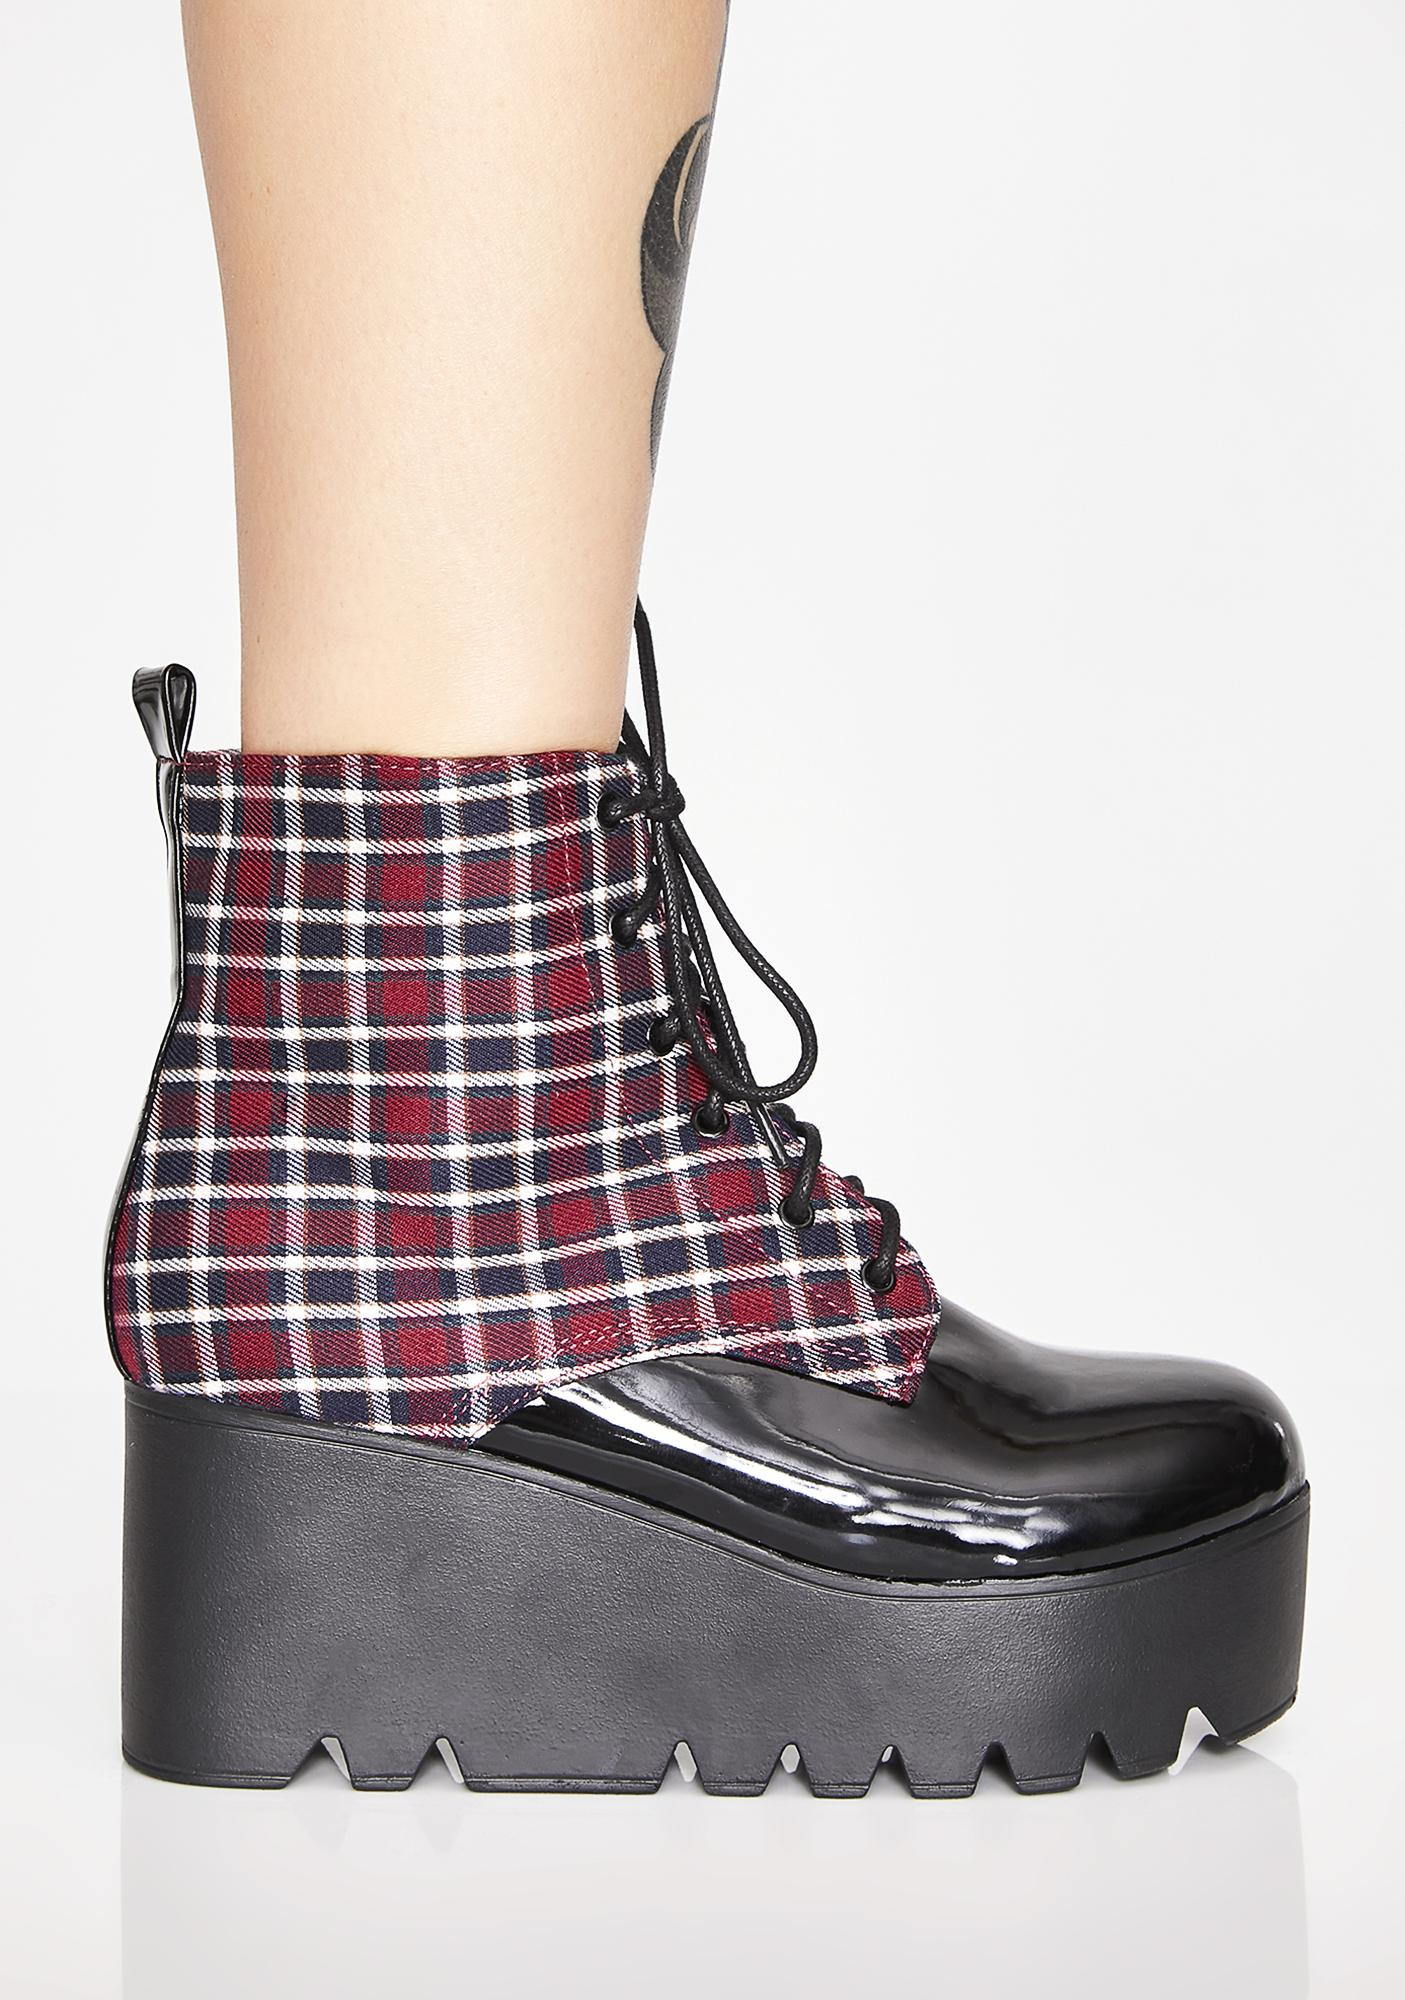 Midnight On The Grind Wedge Booties